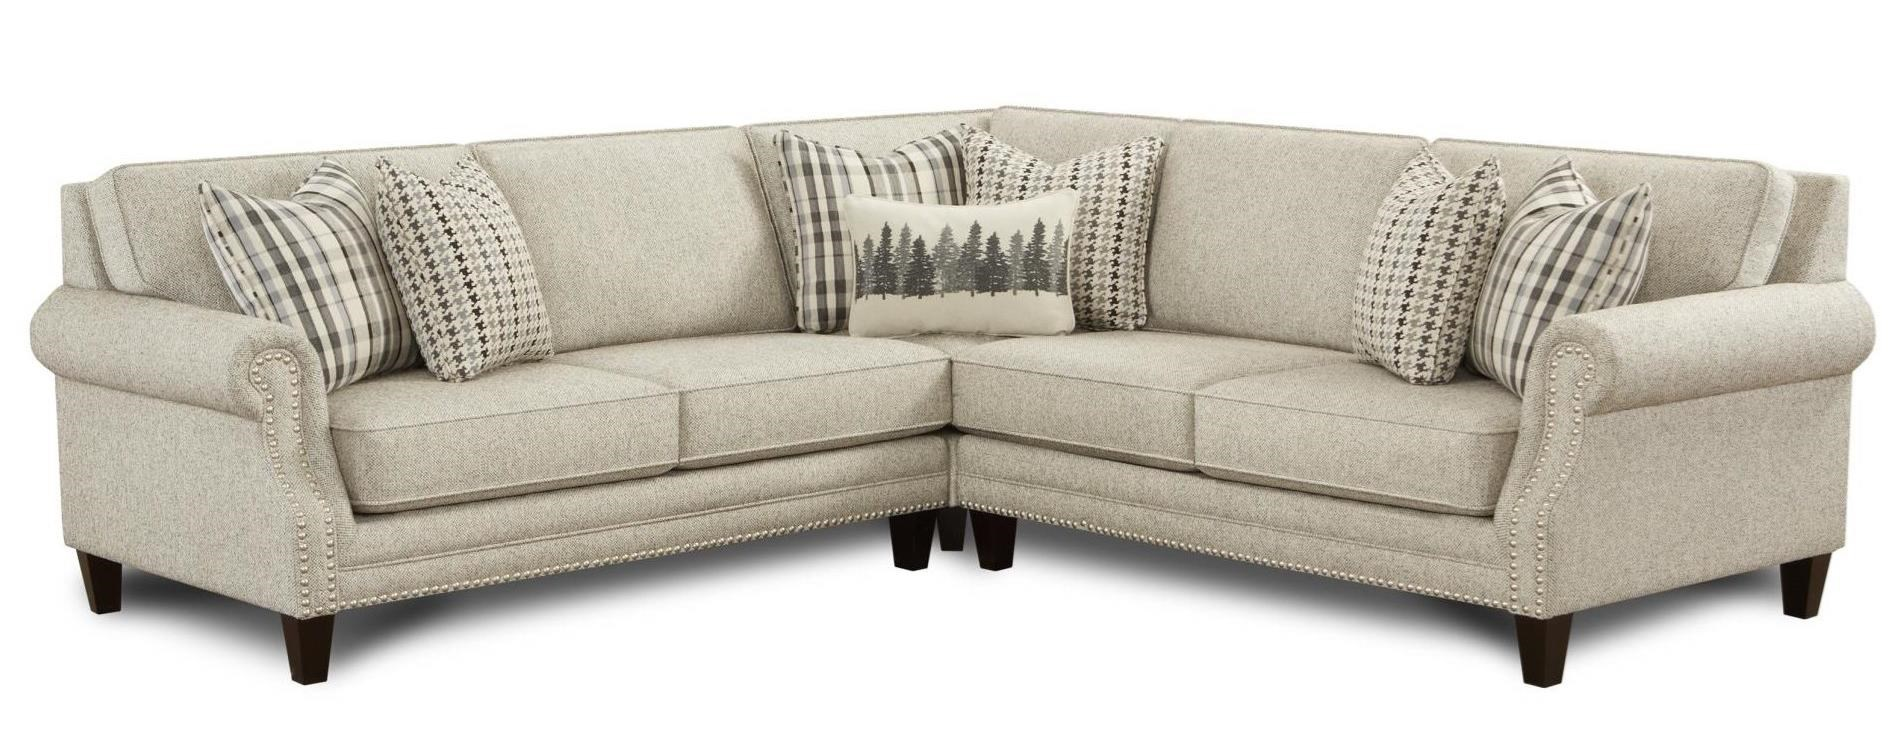 2530 4-Seat Sectional Sofa by Fusion Furniture at Dean Bosler's